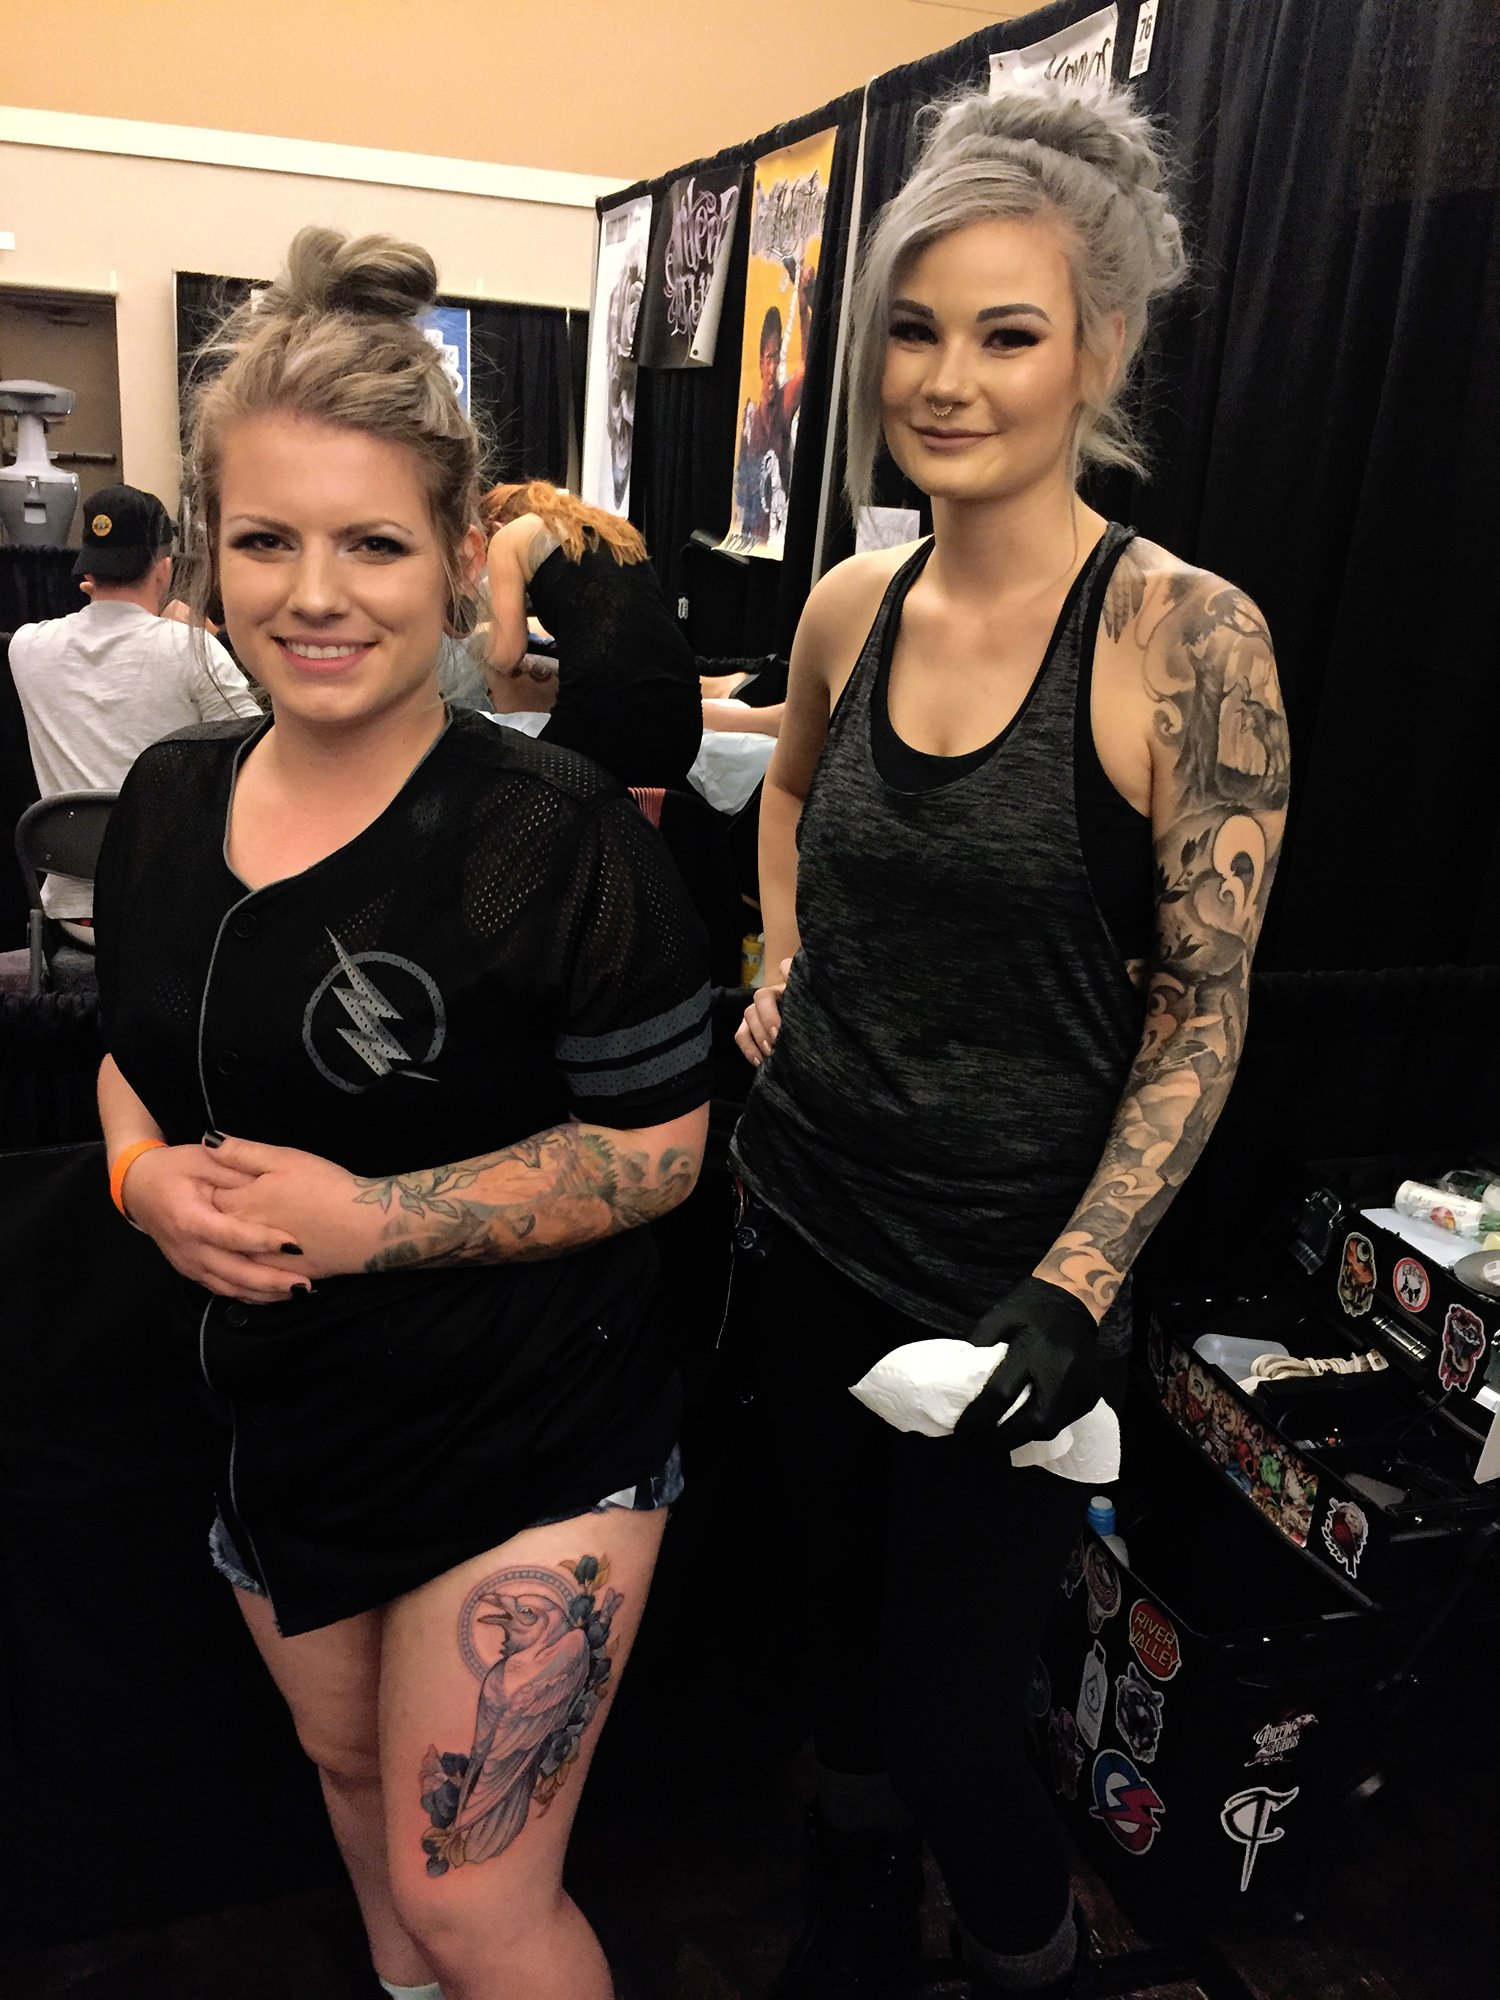 client and tattooer autumn dancer, tattoo conventions